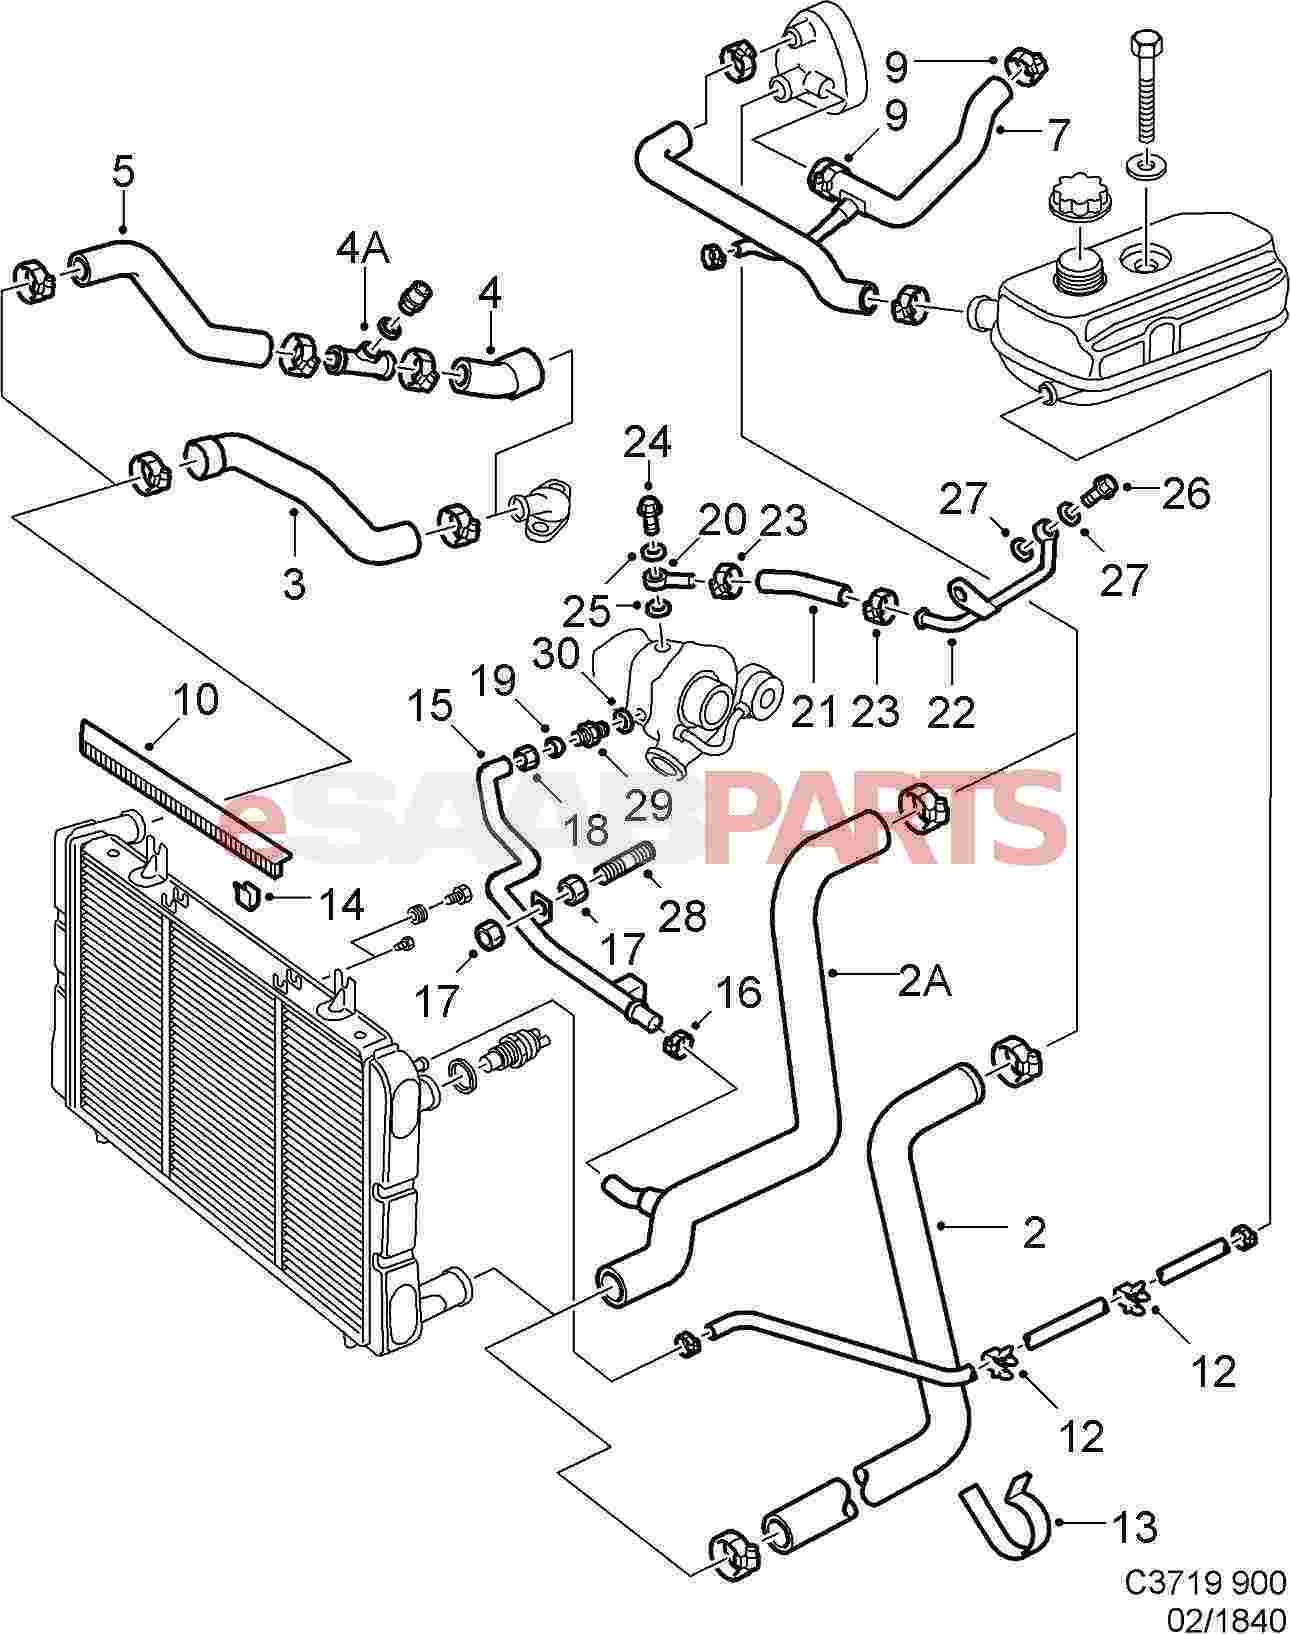 hight resolution of 2011 vw jetta engine diagram wiring diagram load 2011 vw jetta 2 5 se engine diagram 2011 jetta engine diagram